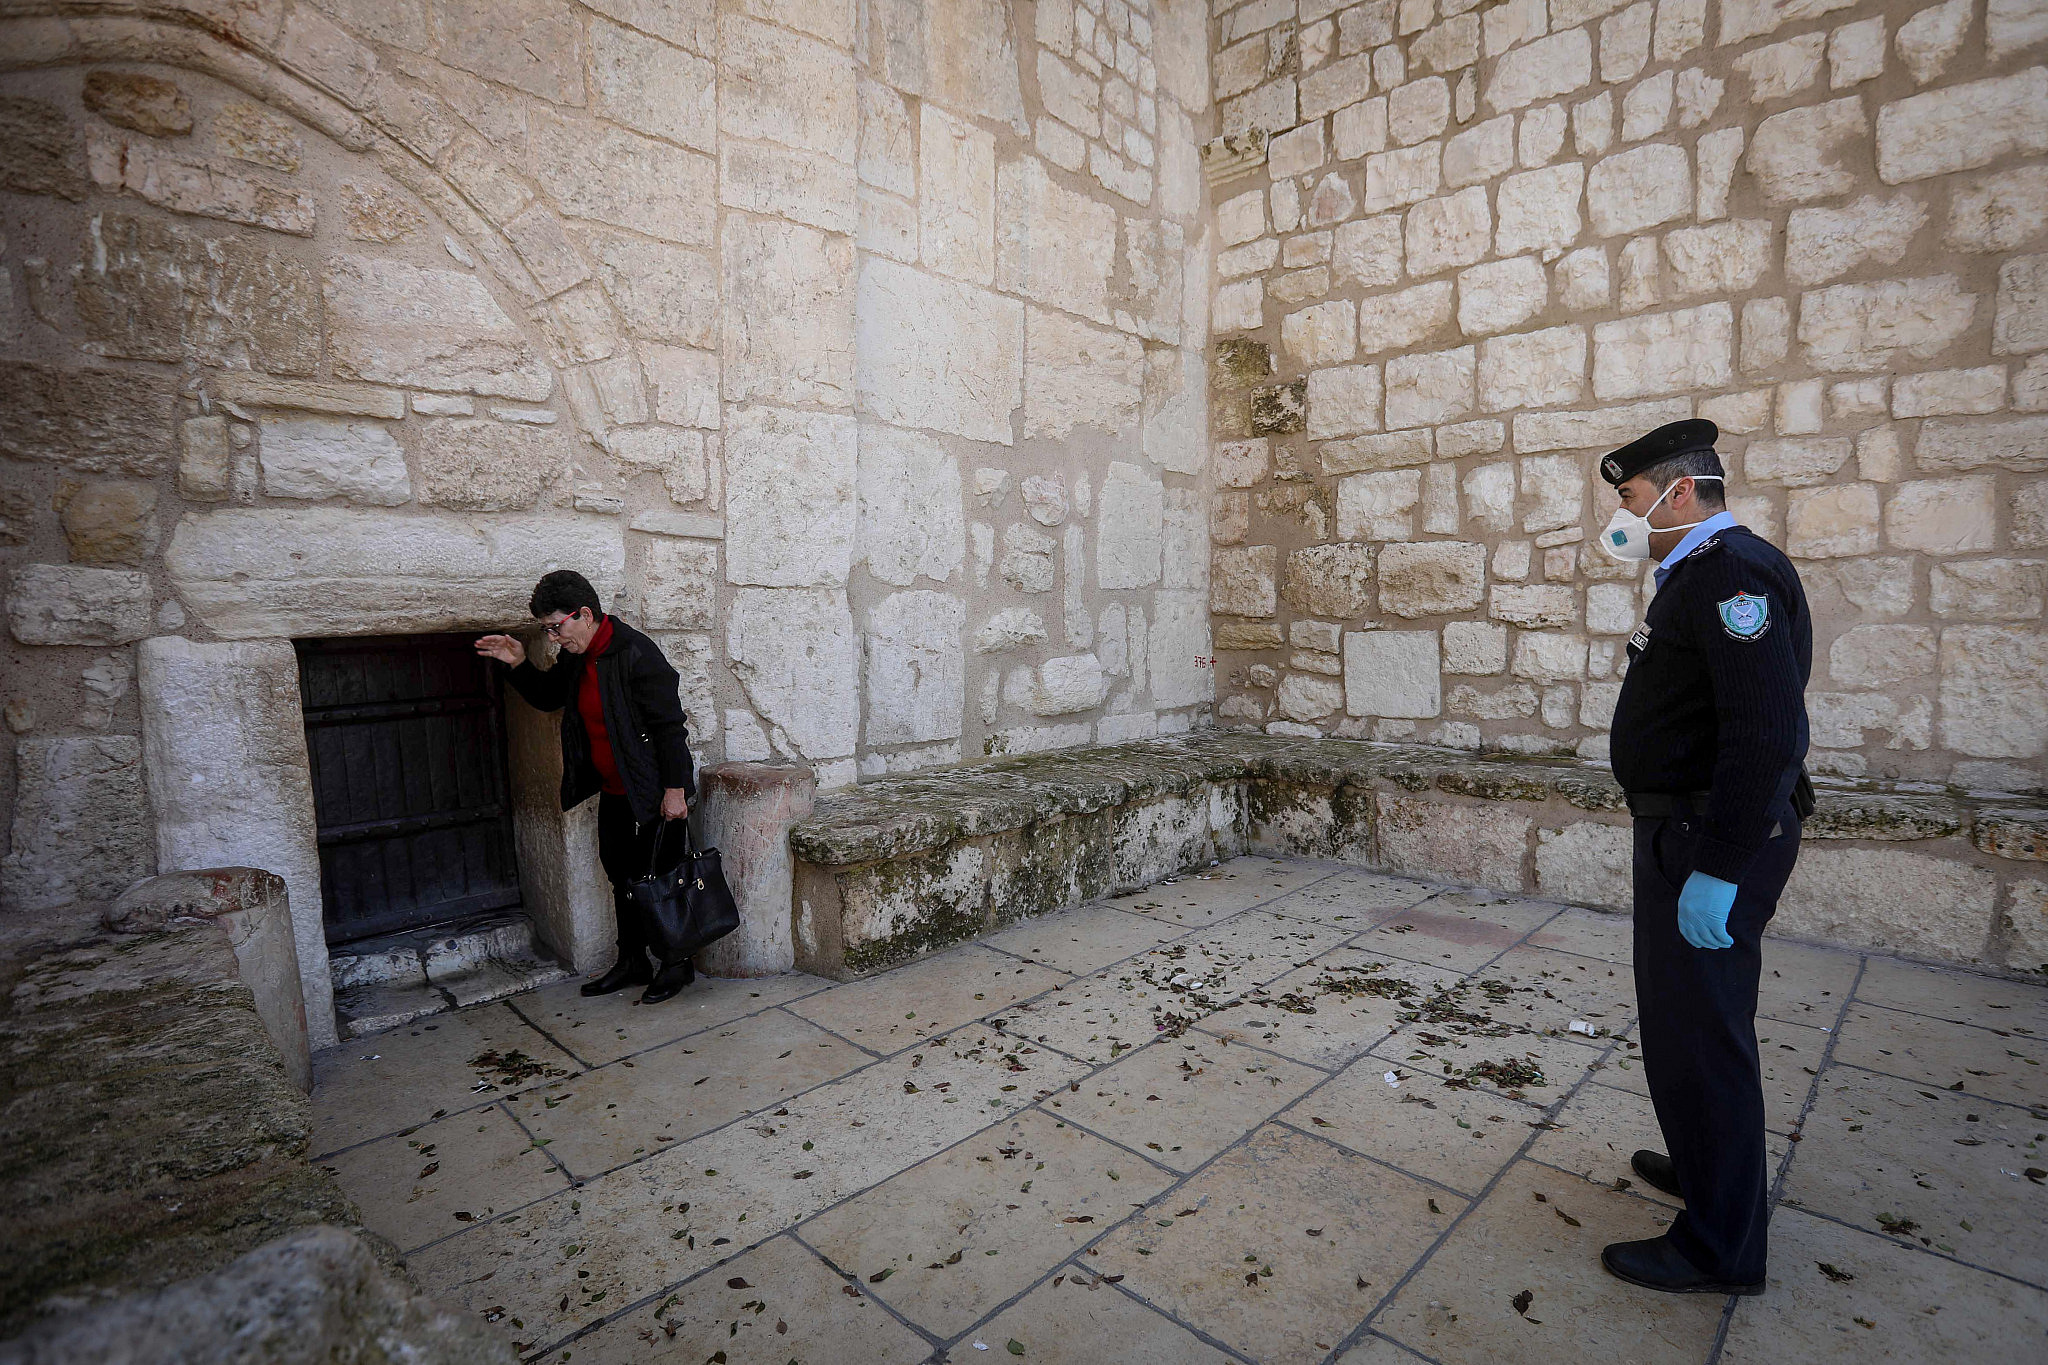 A Palestinian police officer wears a mask to protect himself from the coronavirus, outside the closed Church of the Nativity in the West Bank city of Bethlehem, March 8, 2020. (Wisam Hashlamoun/Flash90)